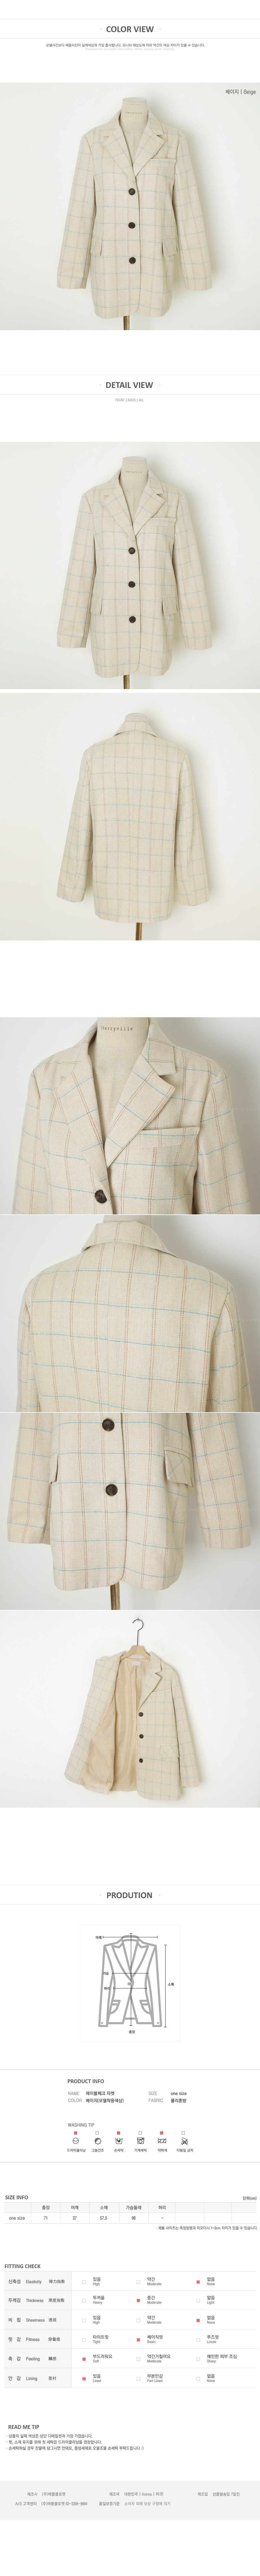 Able check jacket